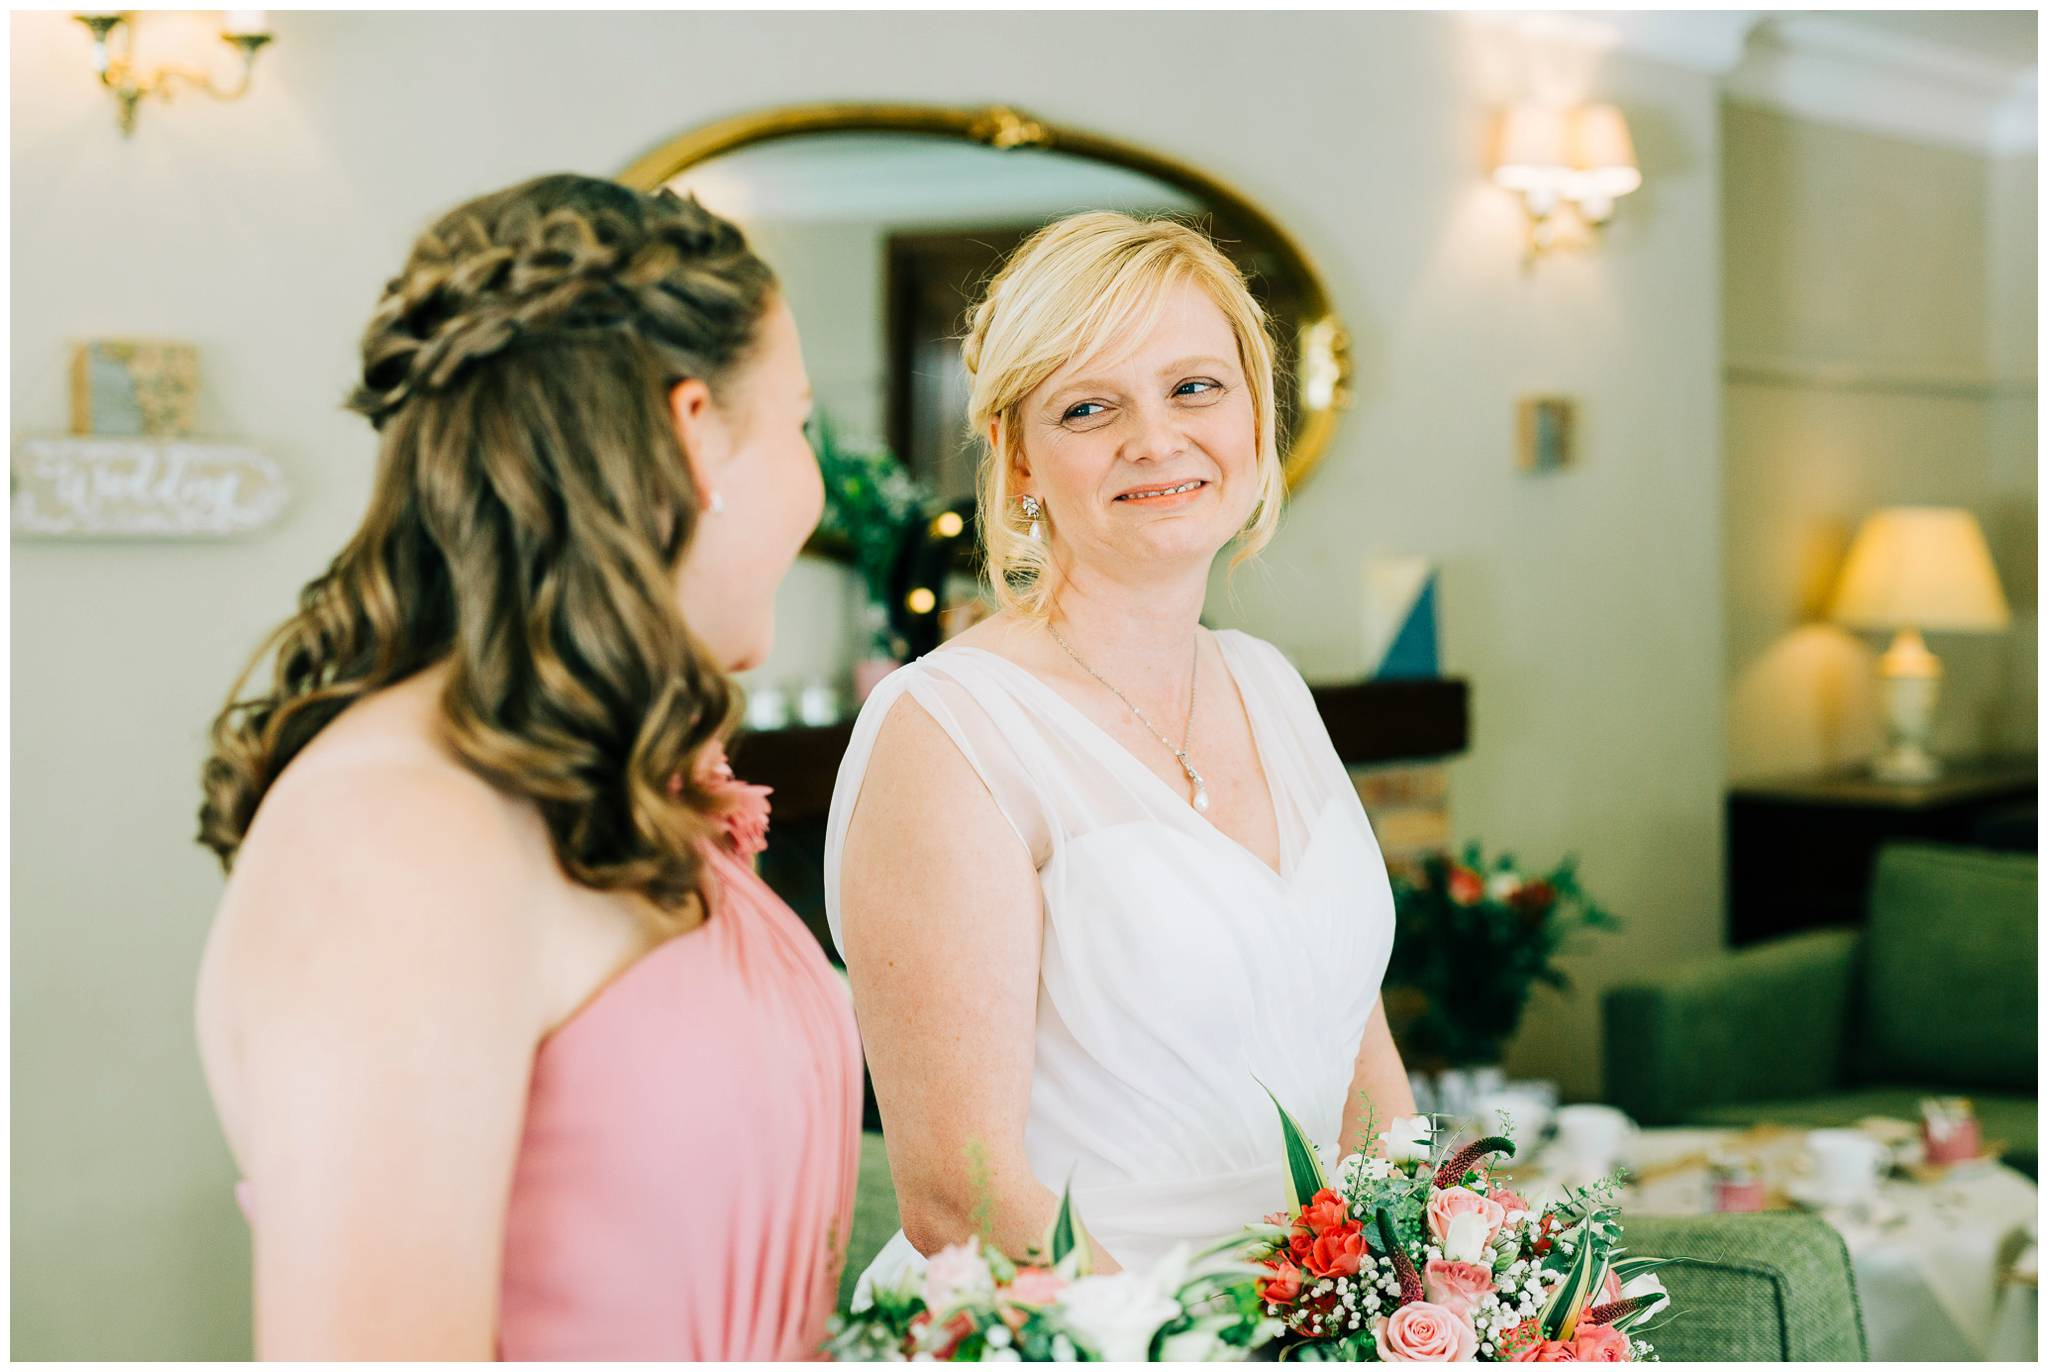 Natural wedding photography Manchester - Clare Robinson Photography_0176.jpg